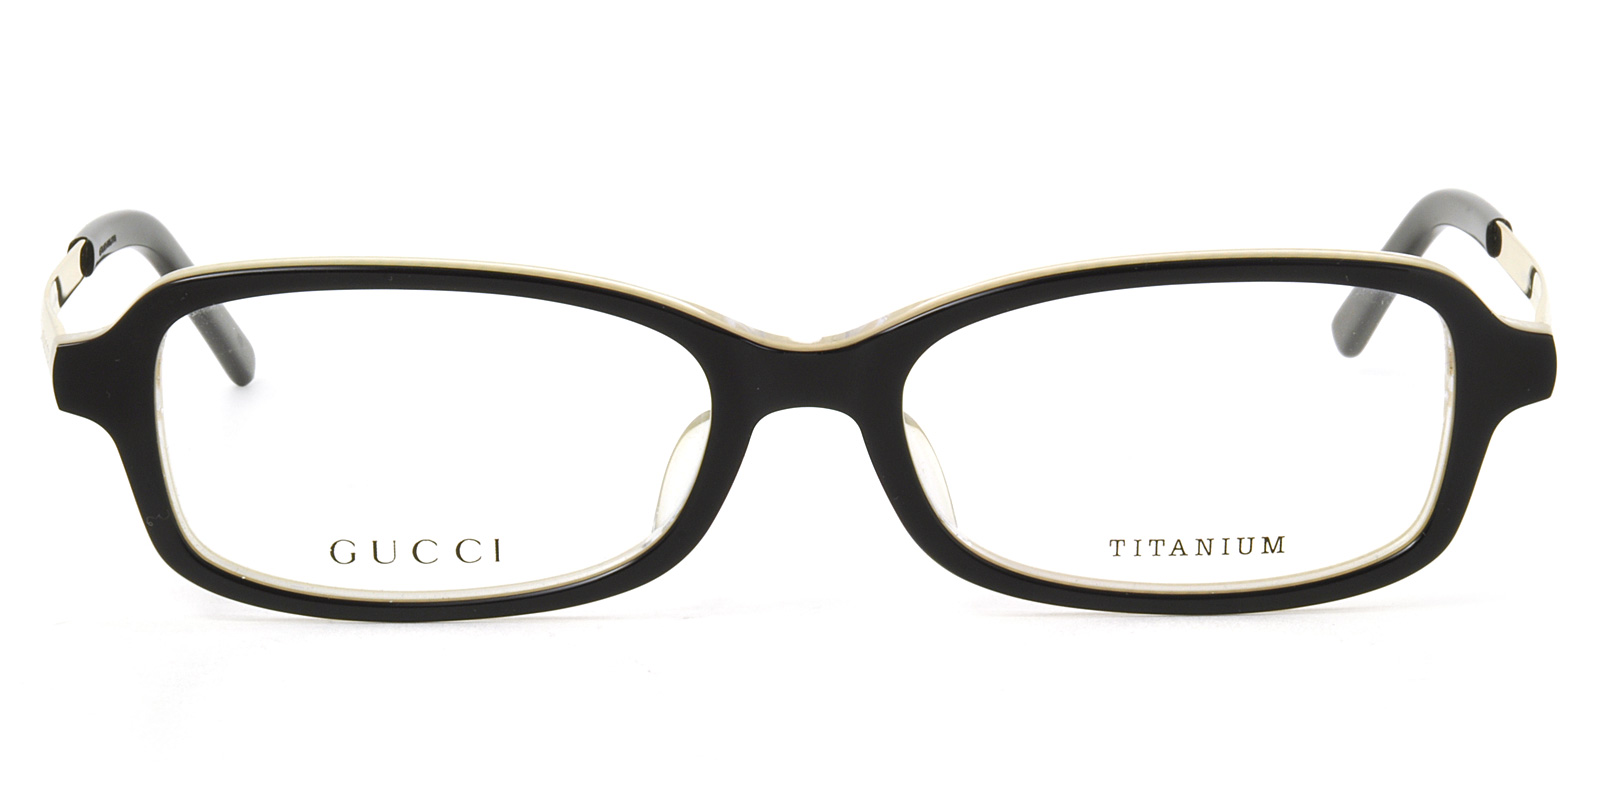 Optical Shop Thats | Rakuten Global Market: (GUCCI) glasses frames ...